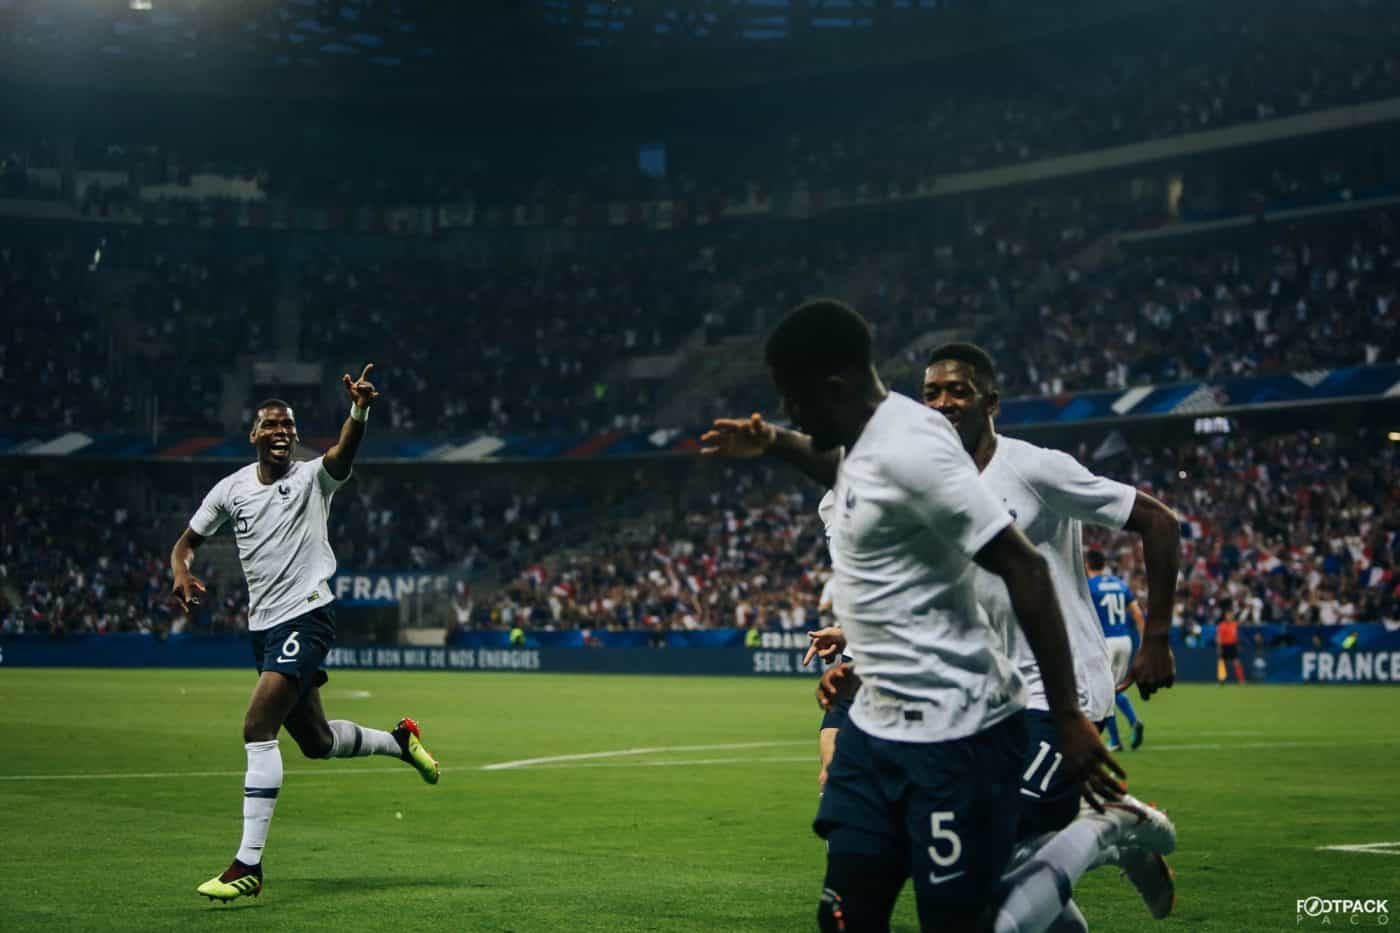 equipe-de-france-1-top-50-photos-footpack